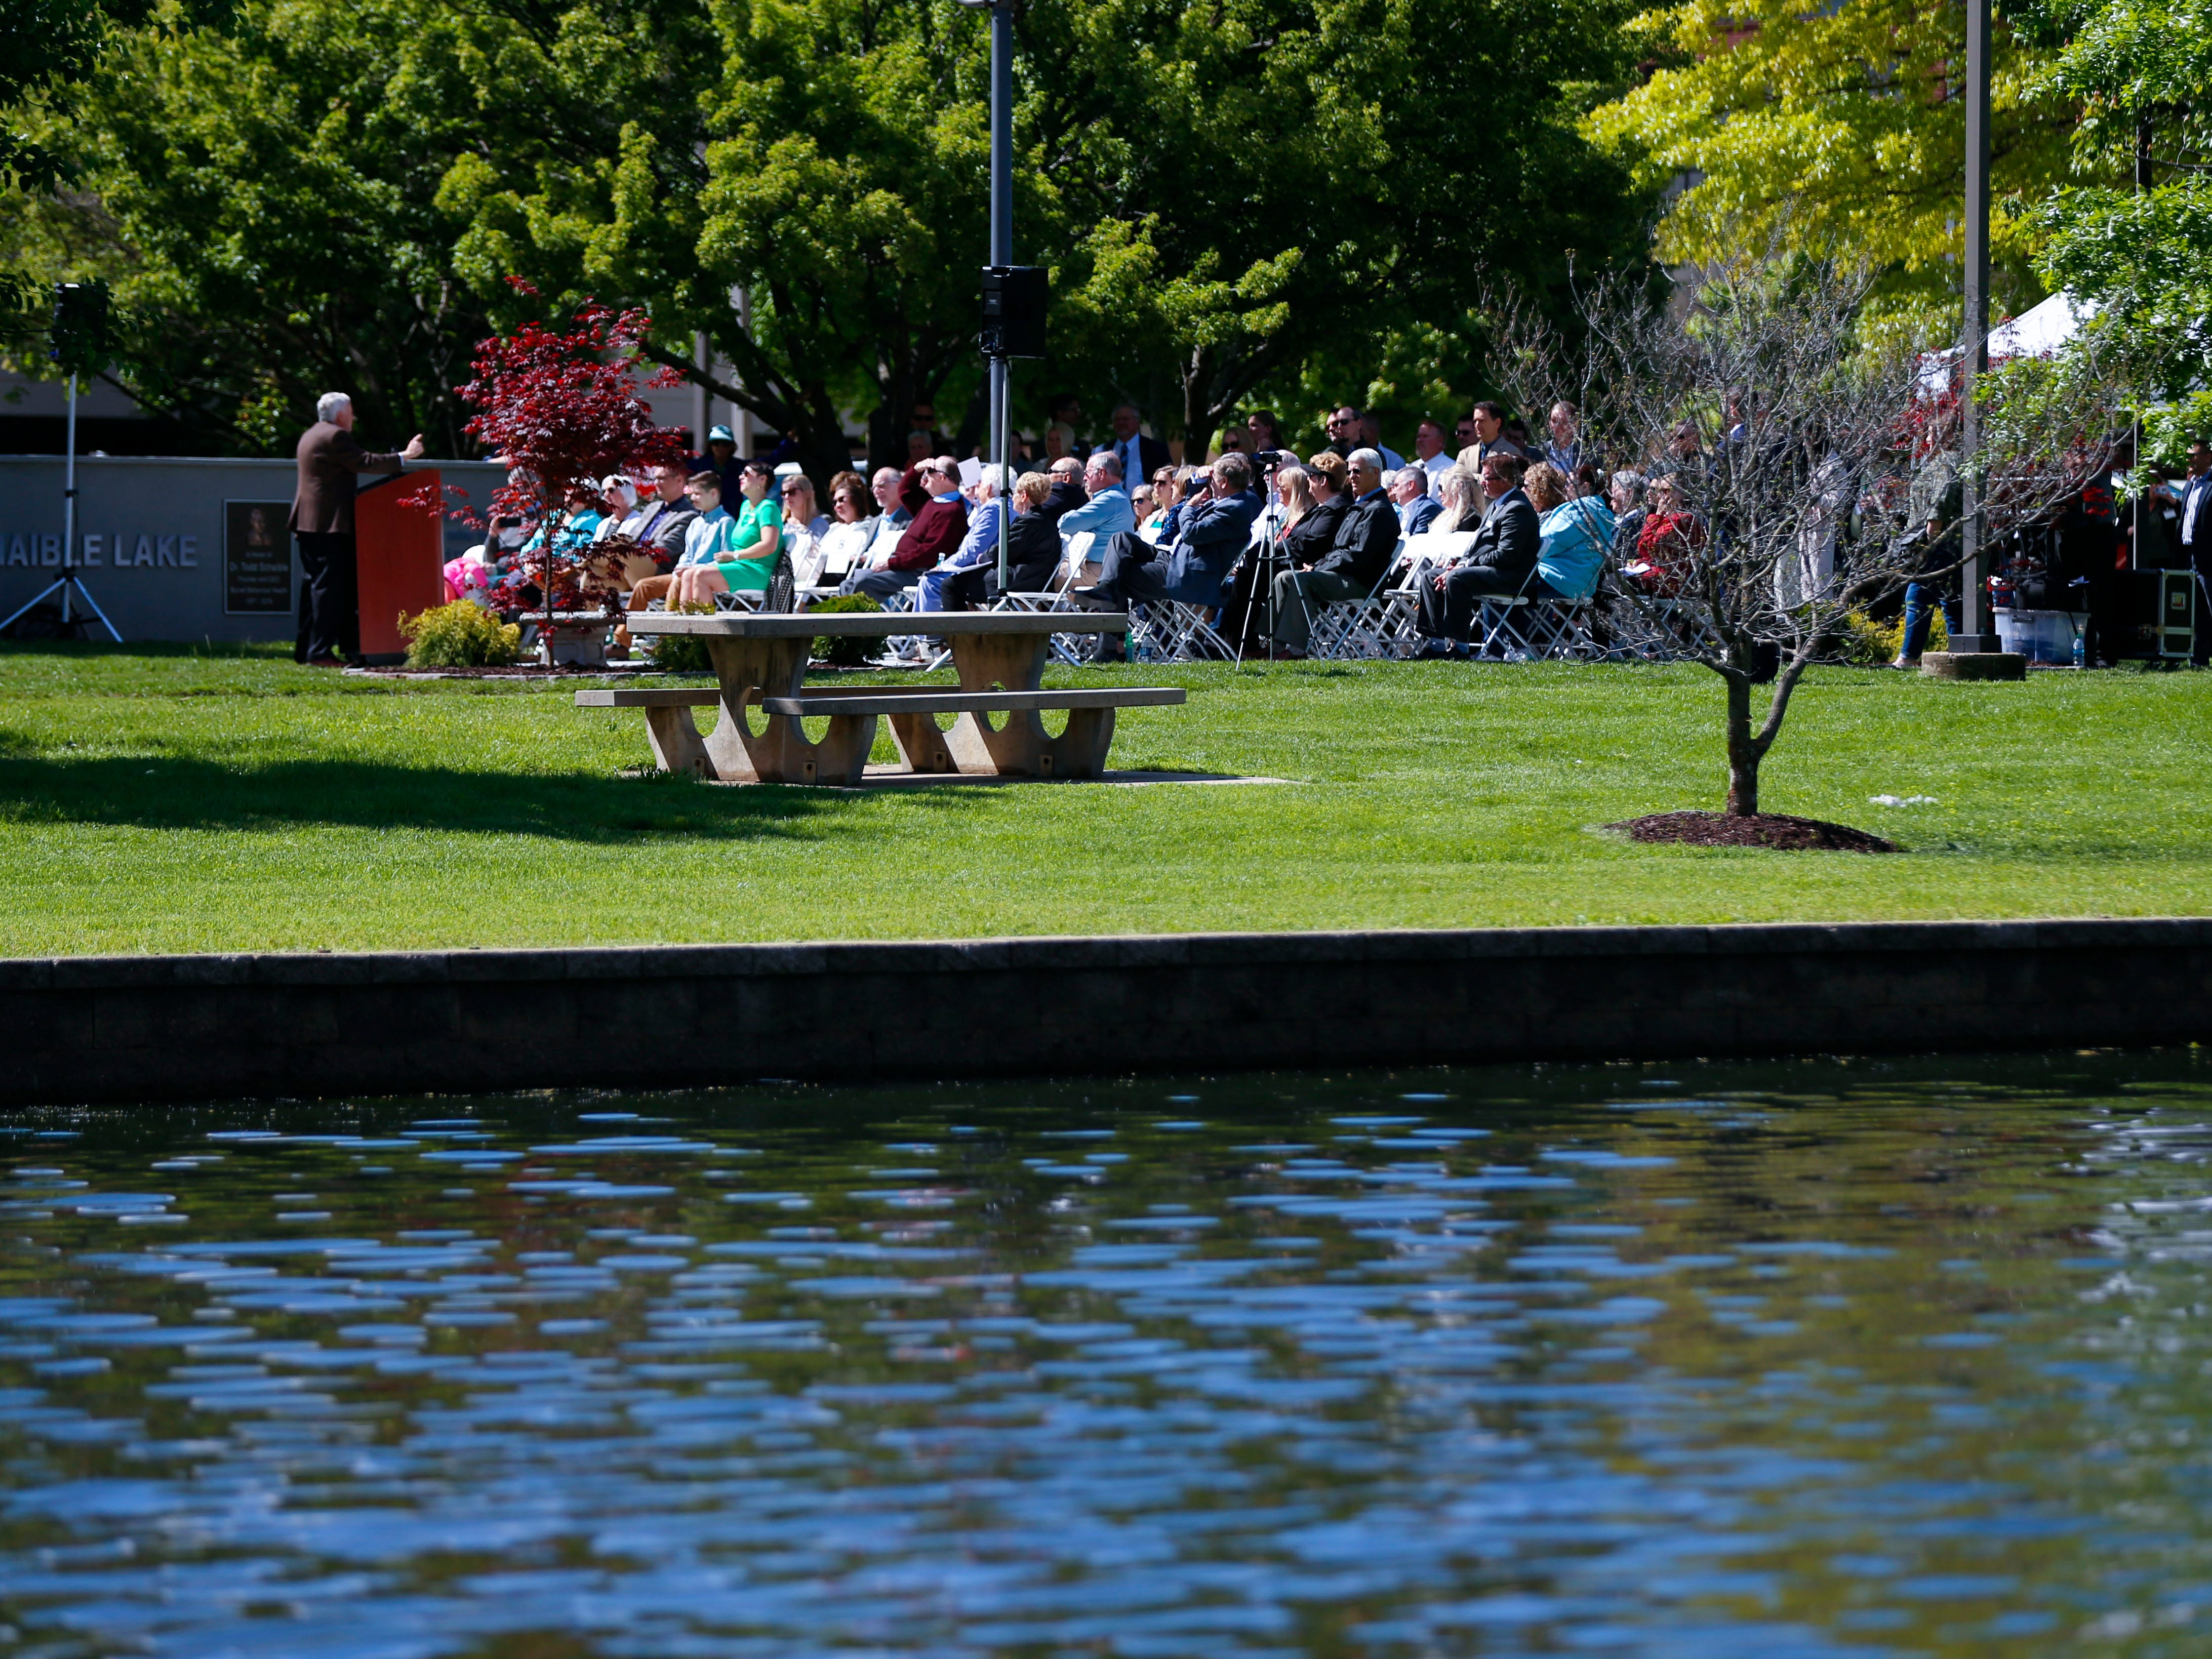 A dedication ceremony of Schaible Lake, named after Burrell Behavioral Health founder, Dr. Todd Schaible, on Friday, May 10, 2019.